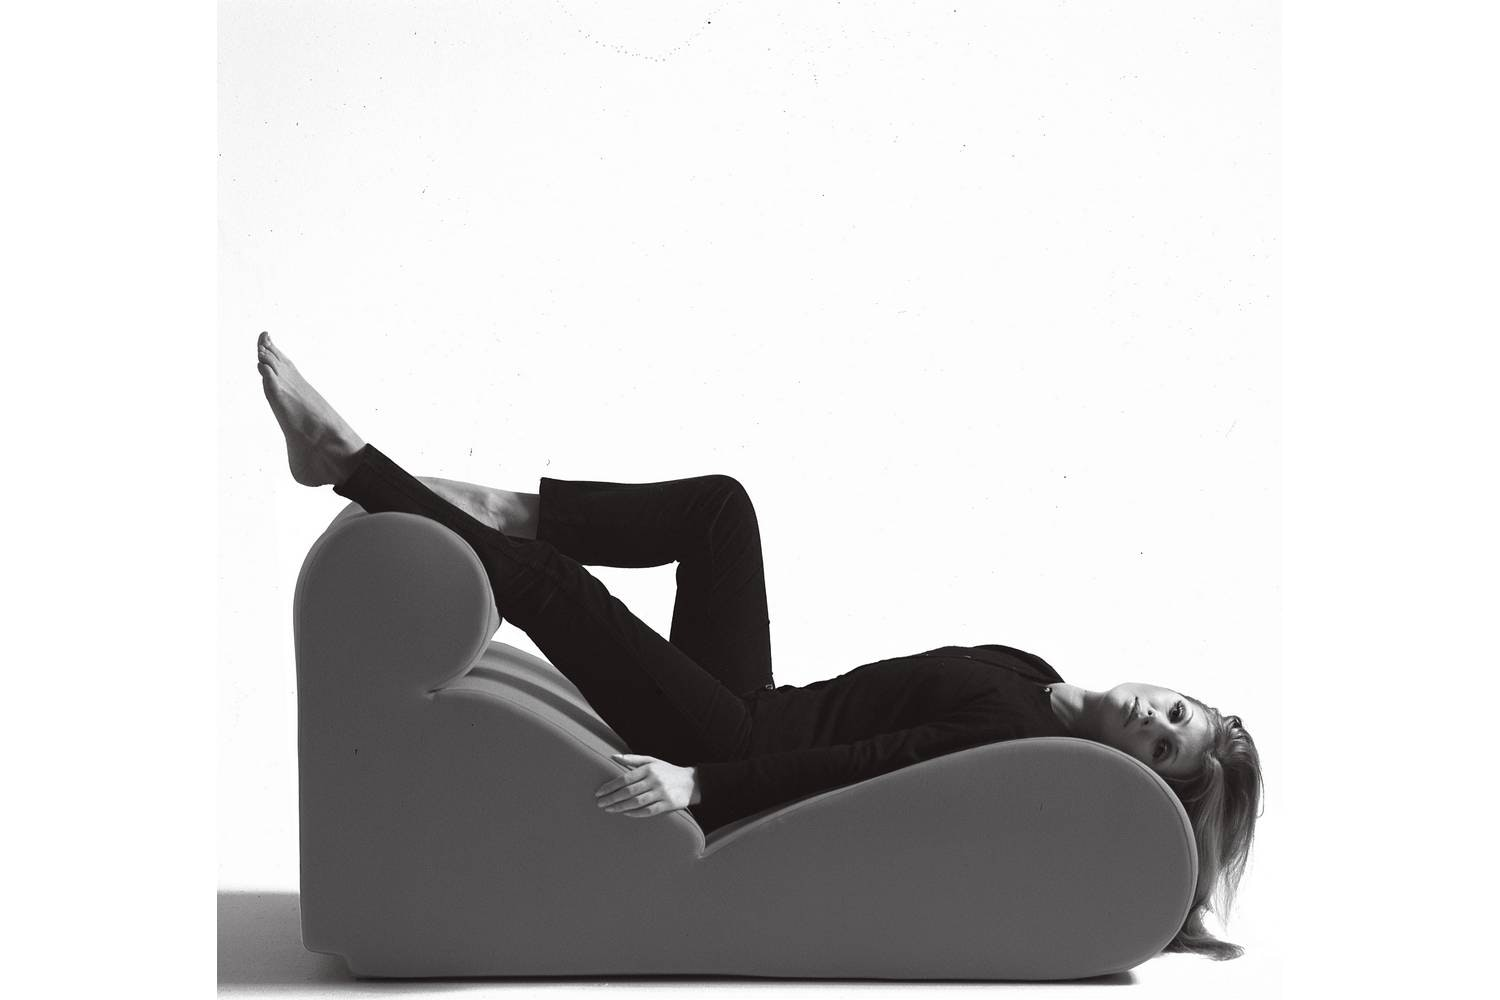 Boborelax Armchair by Cini Boeri for Arflex